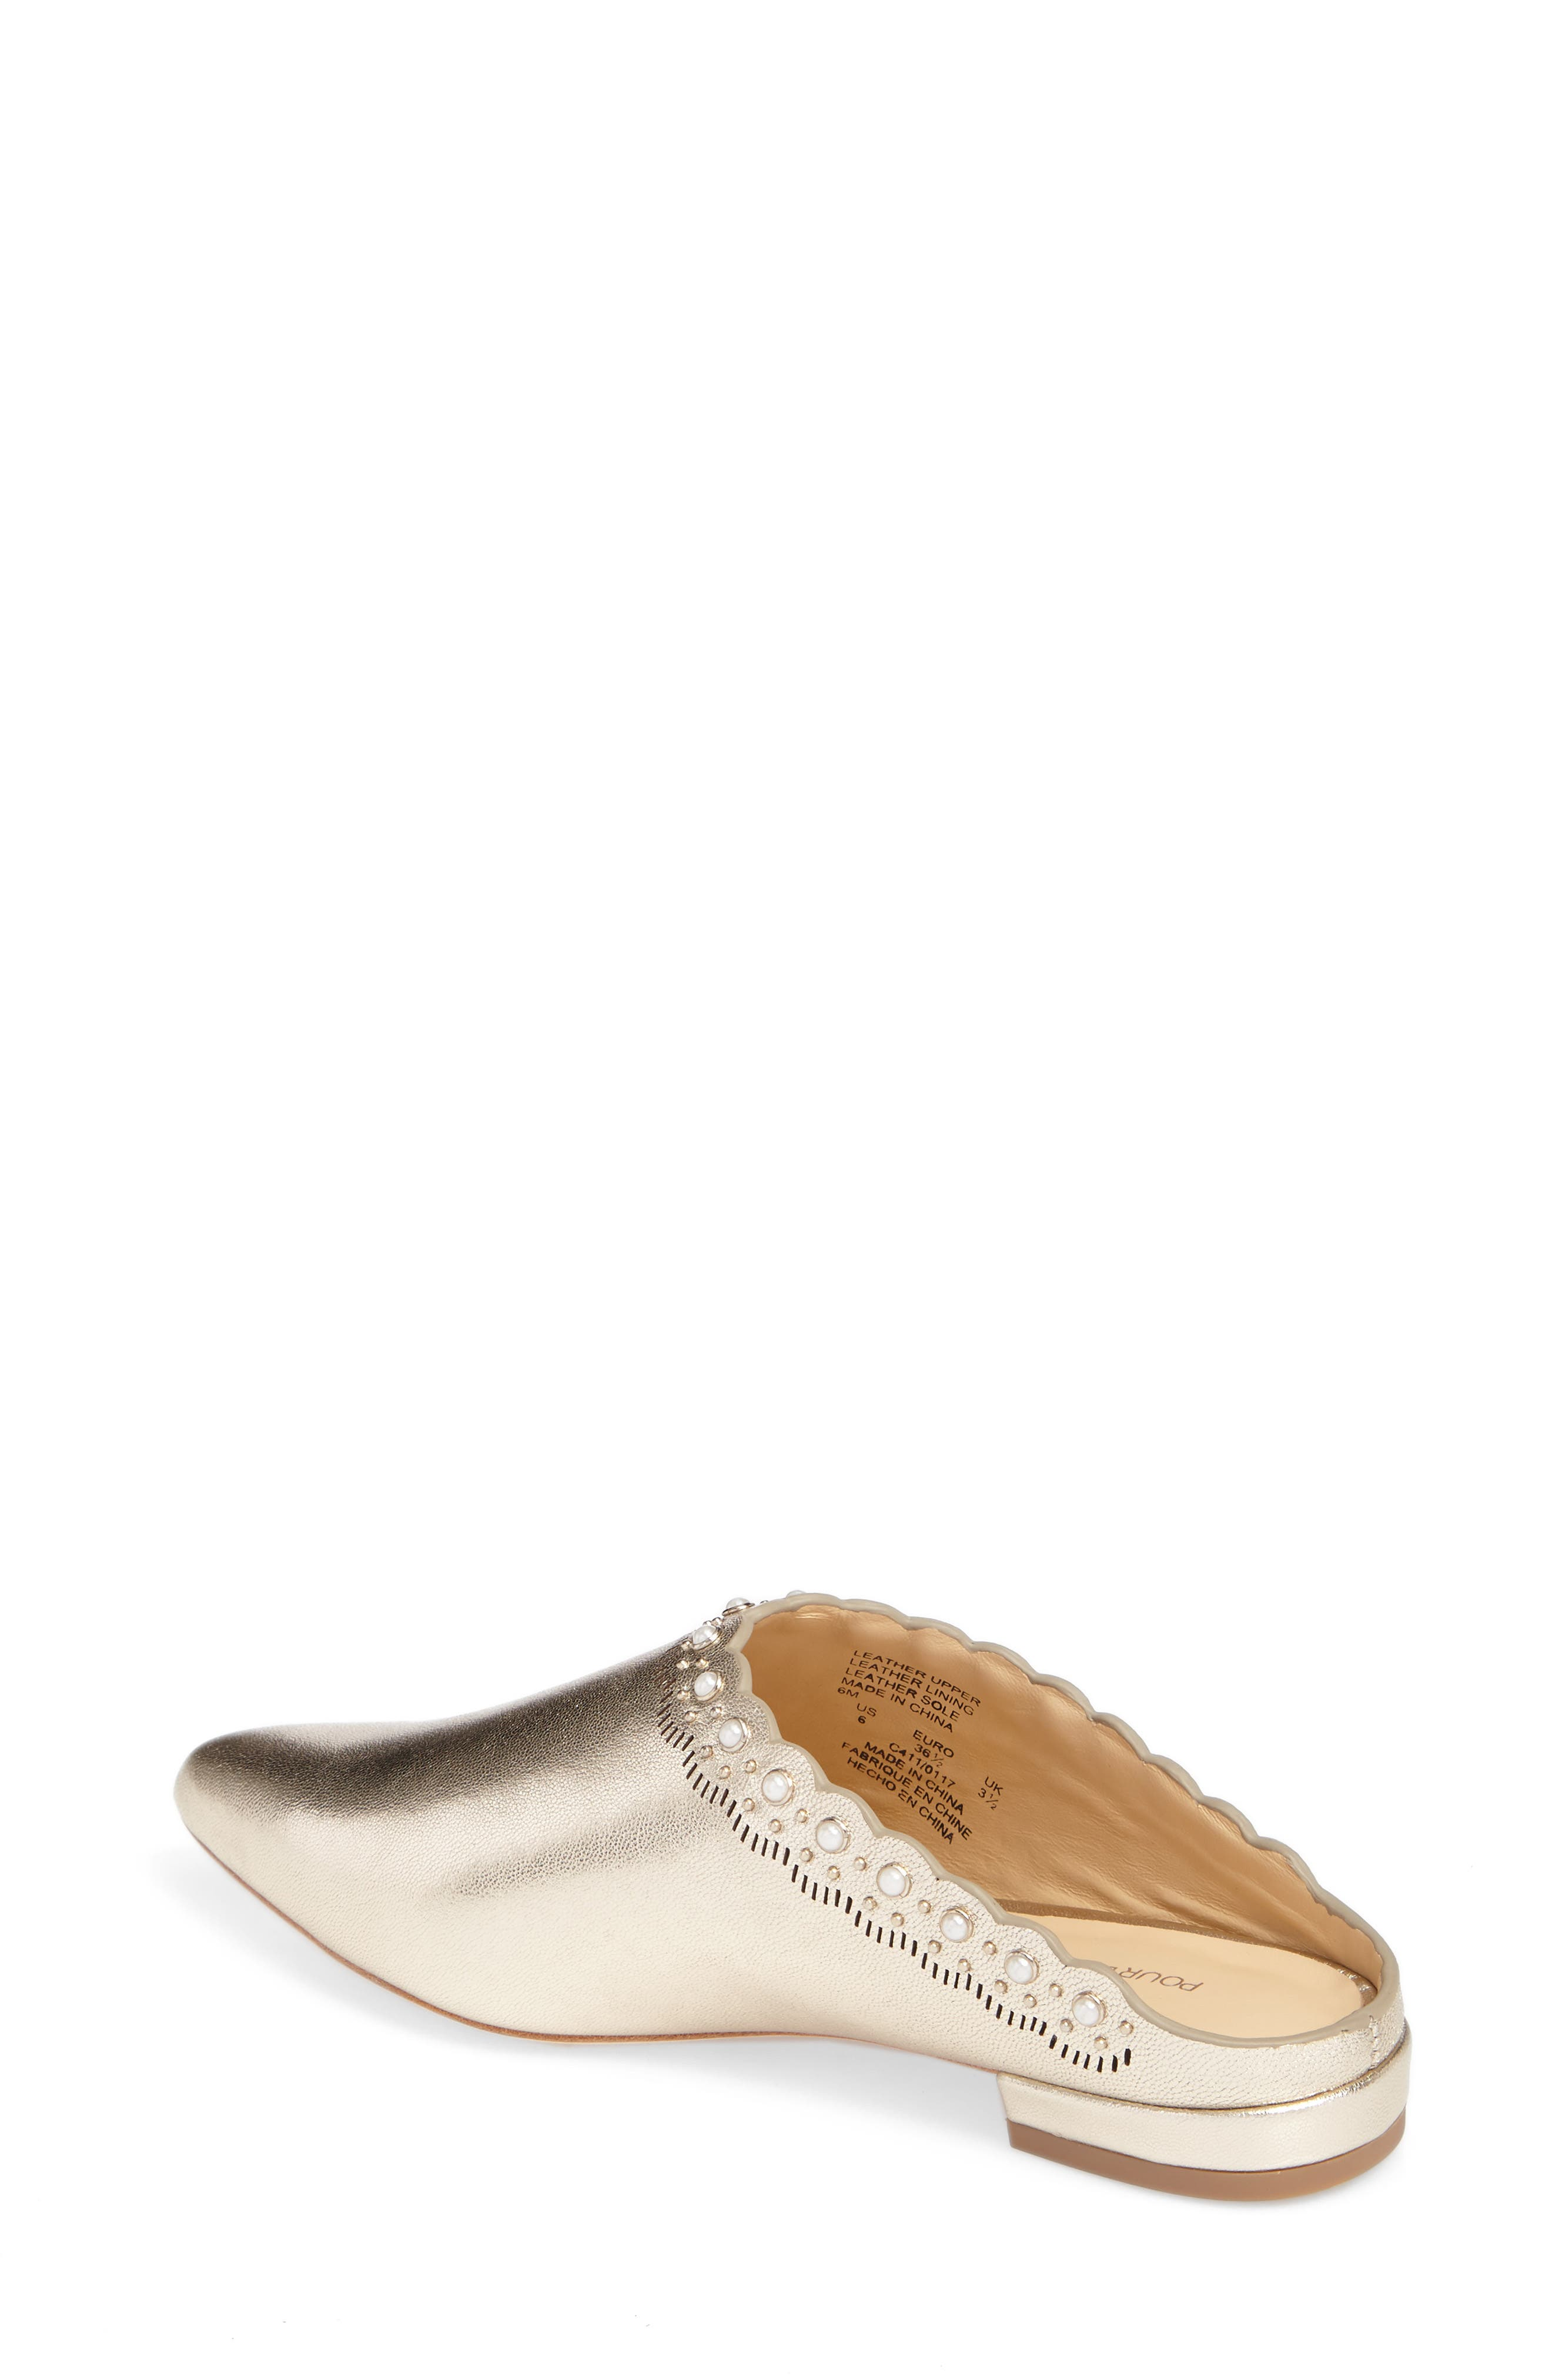 Giselle Mule,                             Alternate thumbnail 2, color,                             Champagne Leather